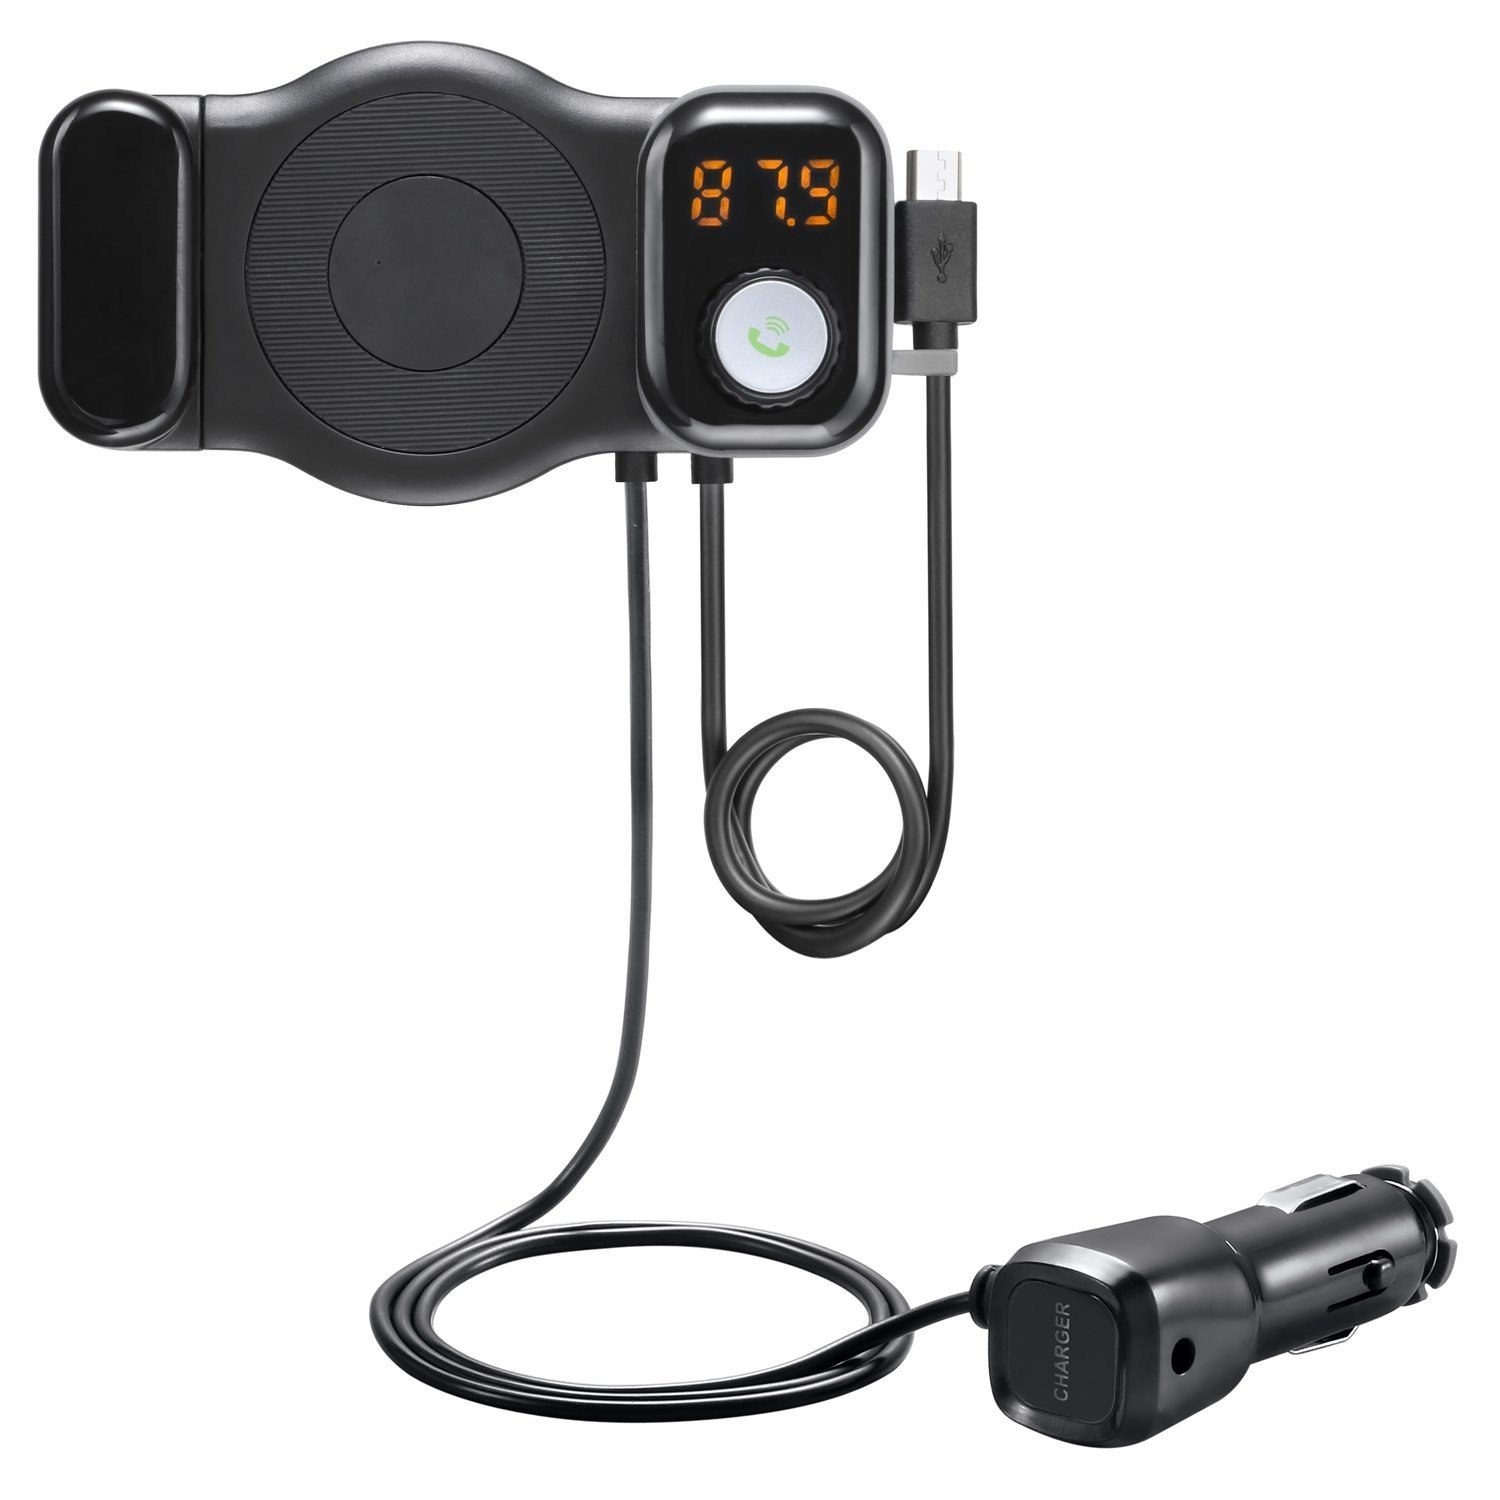 New Bluetooth FM Transmitter, Showerstar123 Wireless in-Car FM Transmitter Radio Adapter and Car Phone Mount with USB Car Adapter Handsfree Car Kit - Black